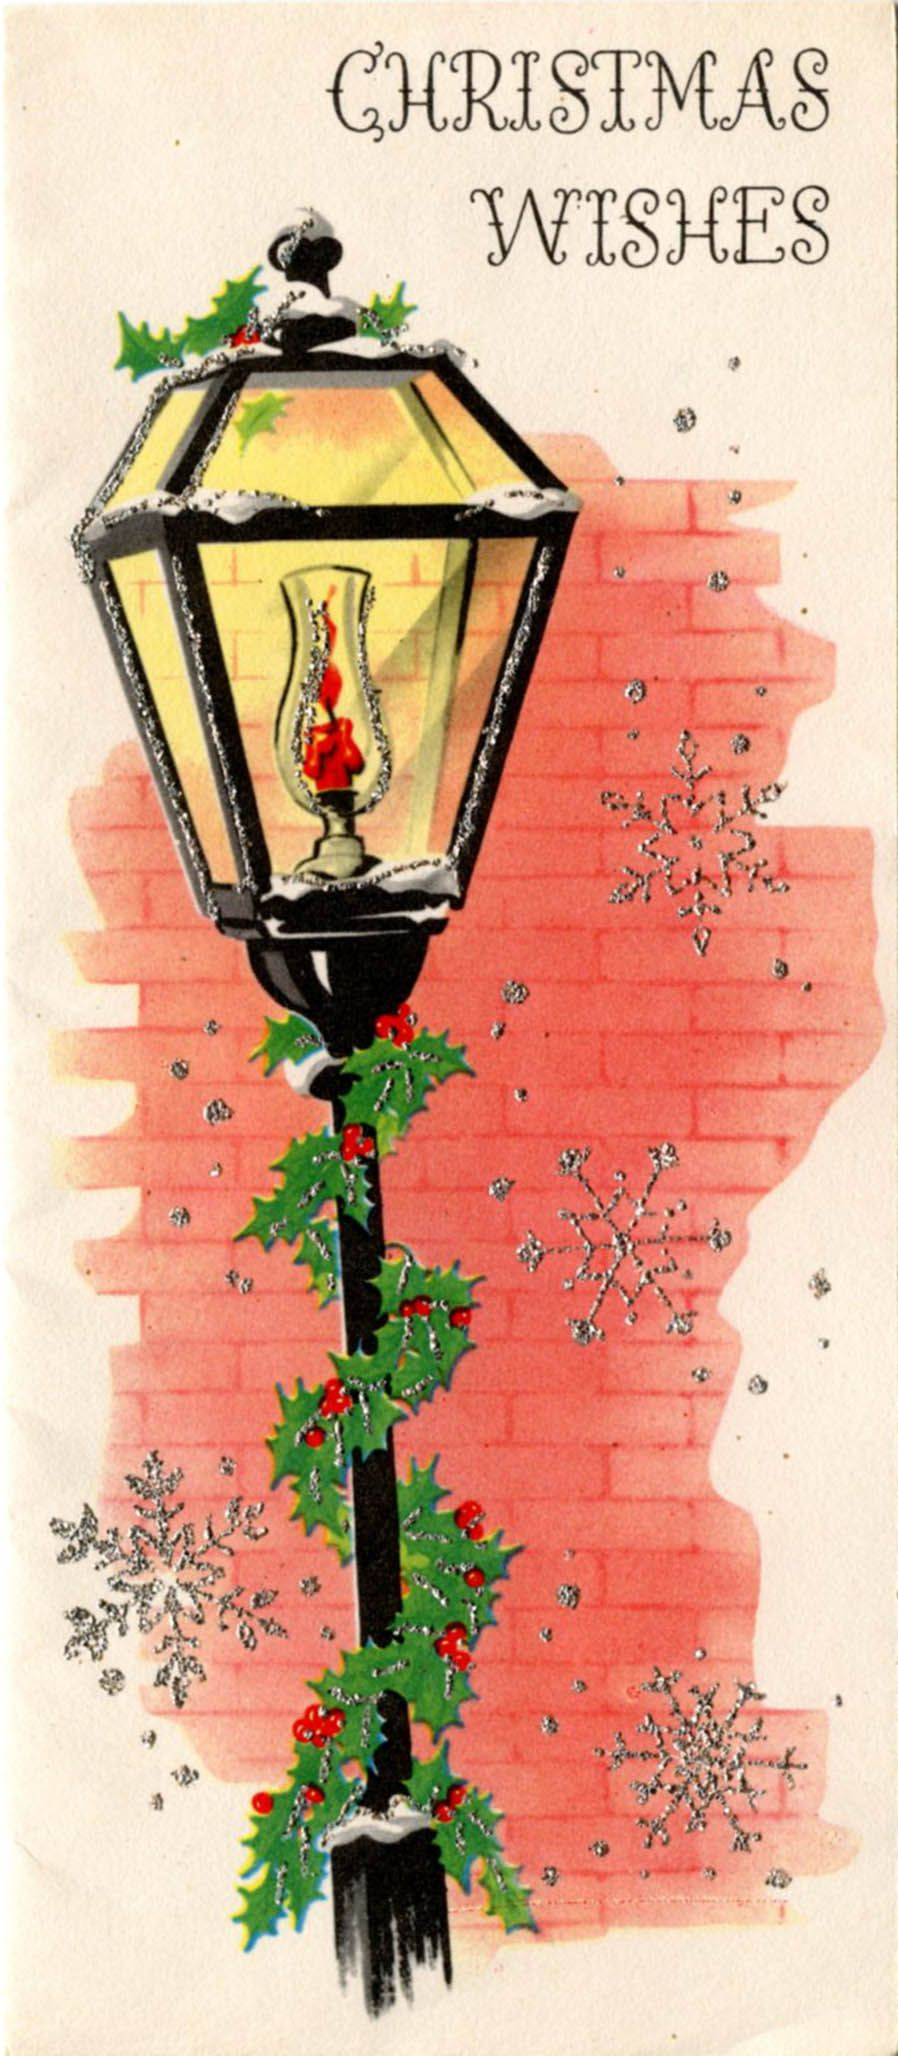 Christmas Wishes... | Christmas Graphics 1 (Misc.) | Pinterest ...